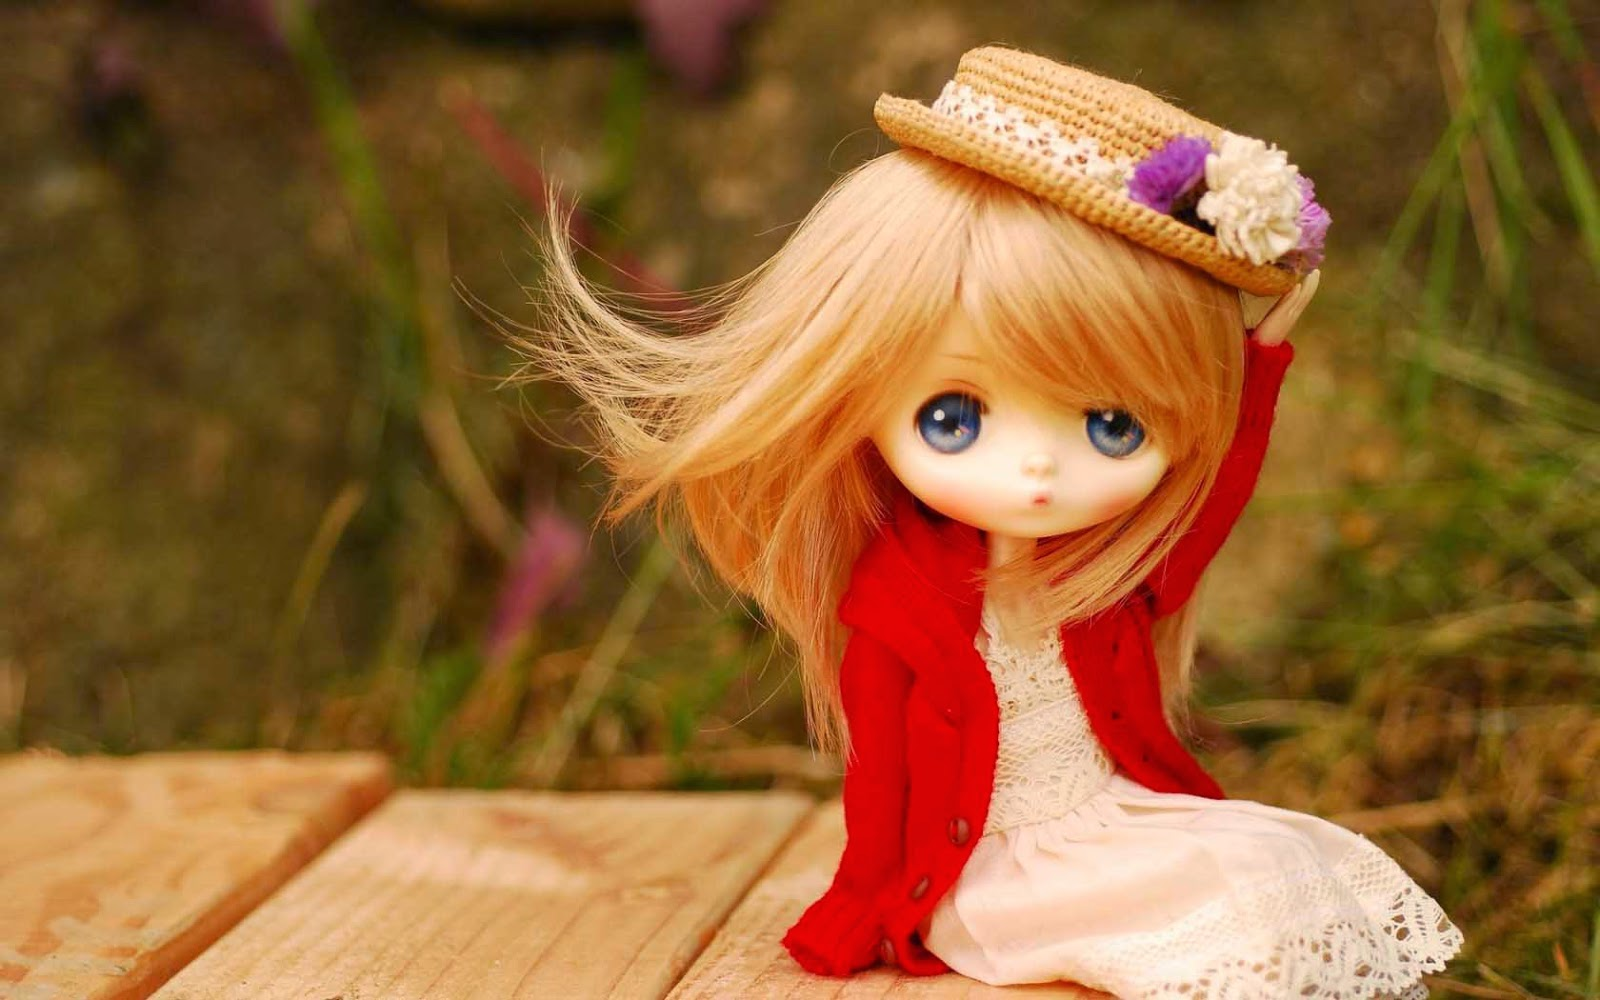 Wallpaper Barbie Doll Latest Hd Wallpapers Free Download